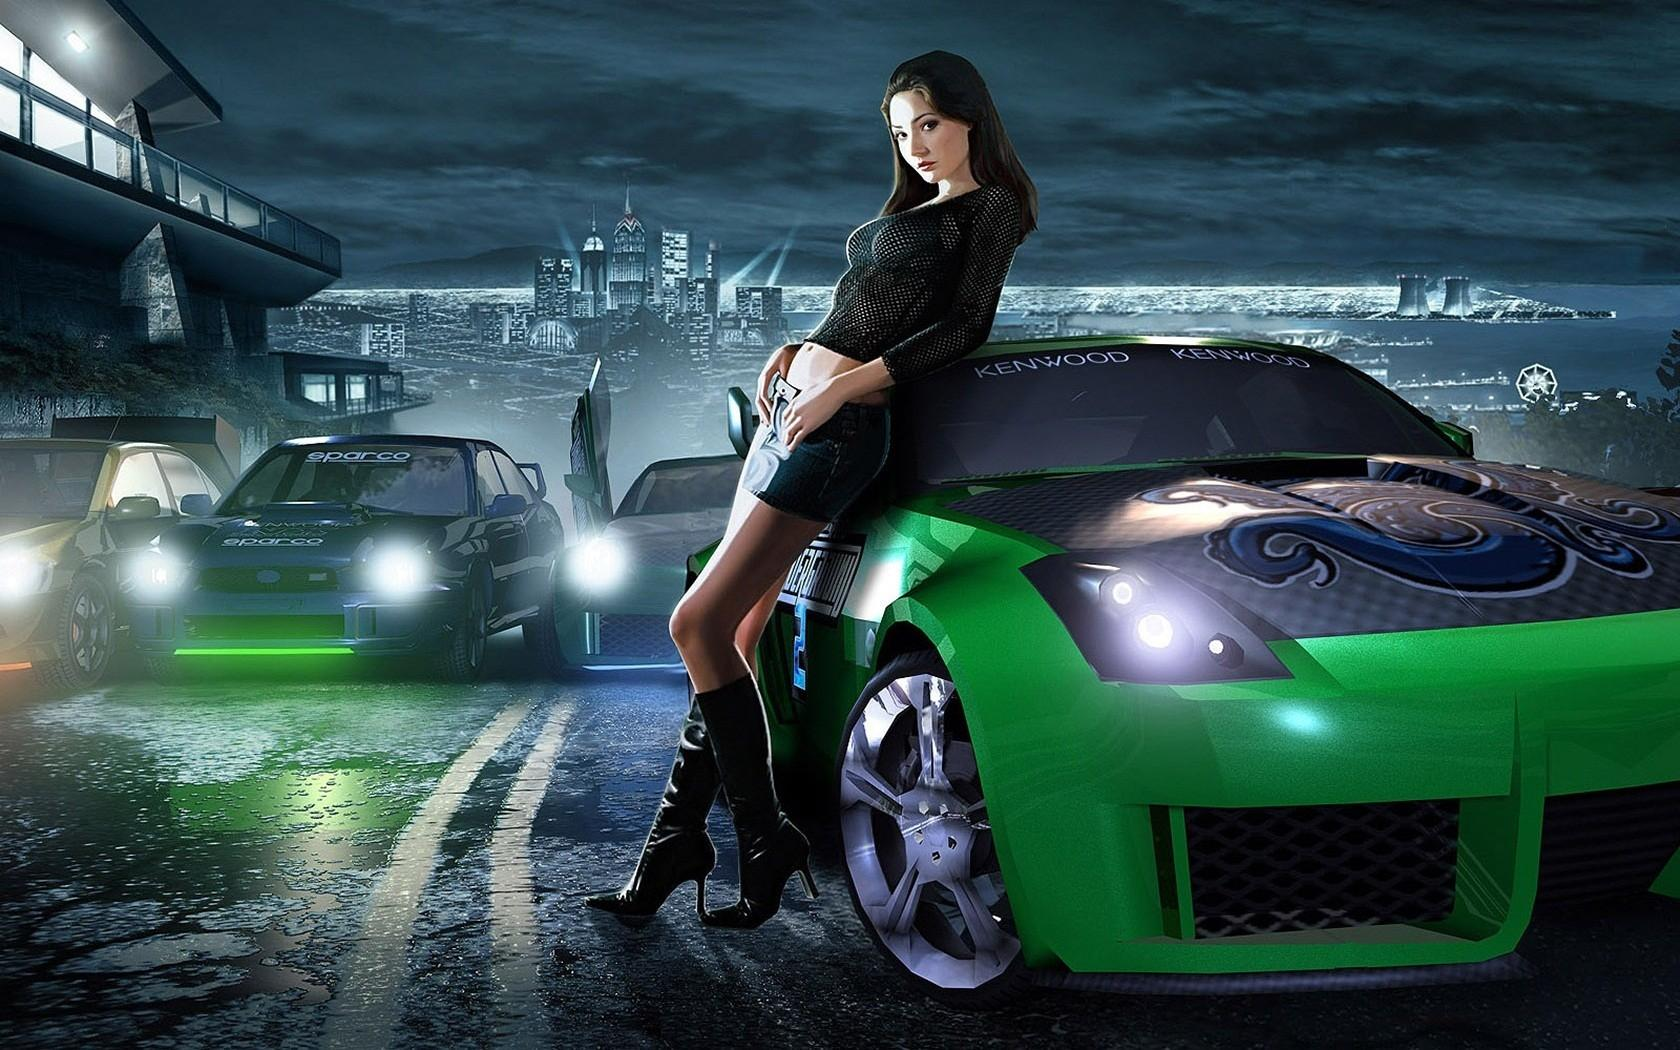 d2e54f-nfs_need_for_speed_girl_car_city_road_16164_1680x1050.jpg